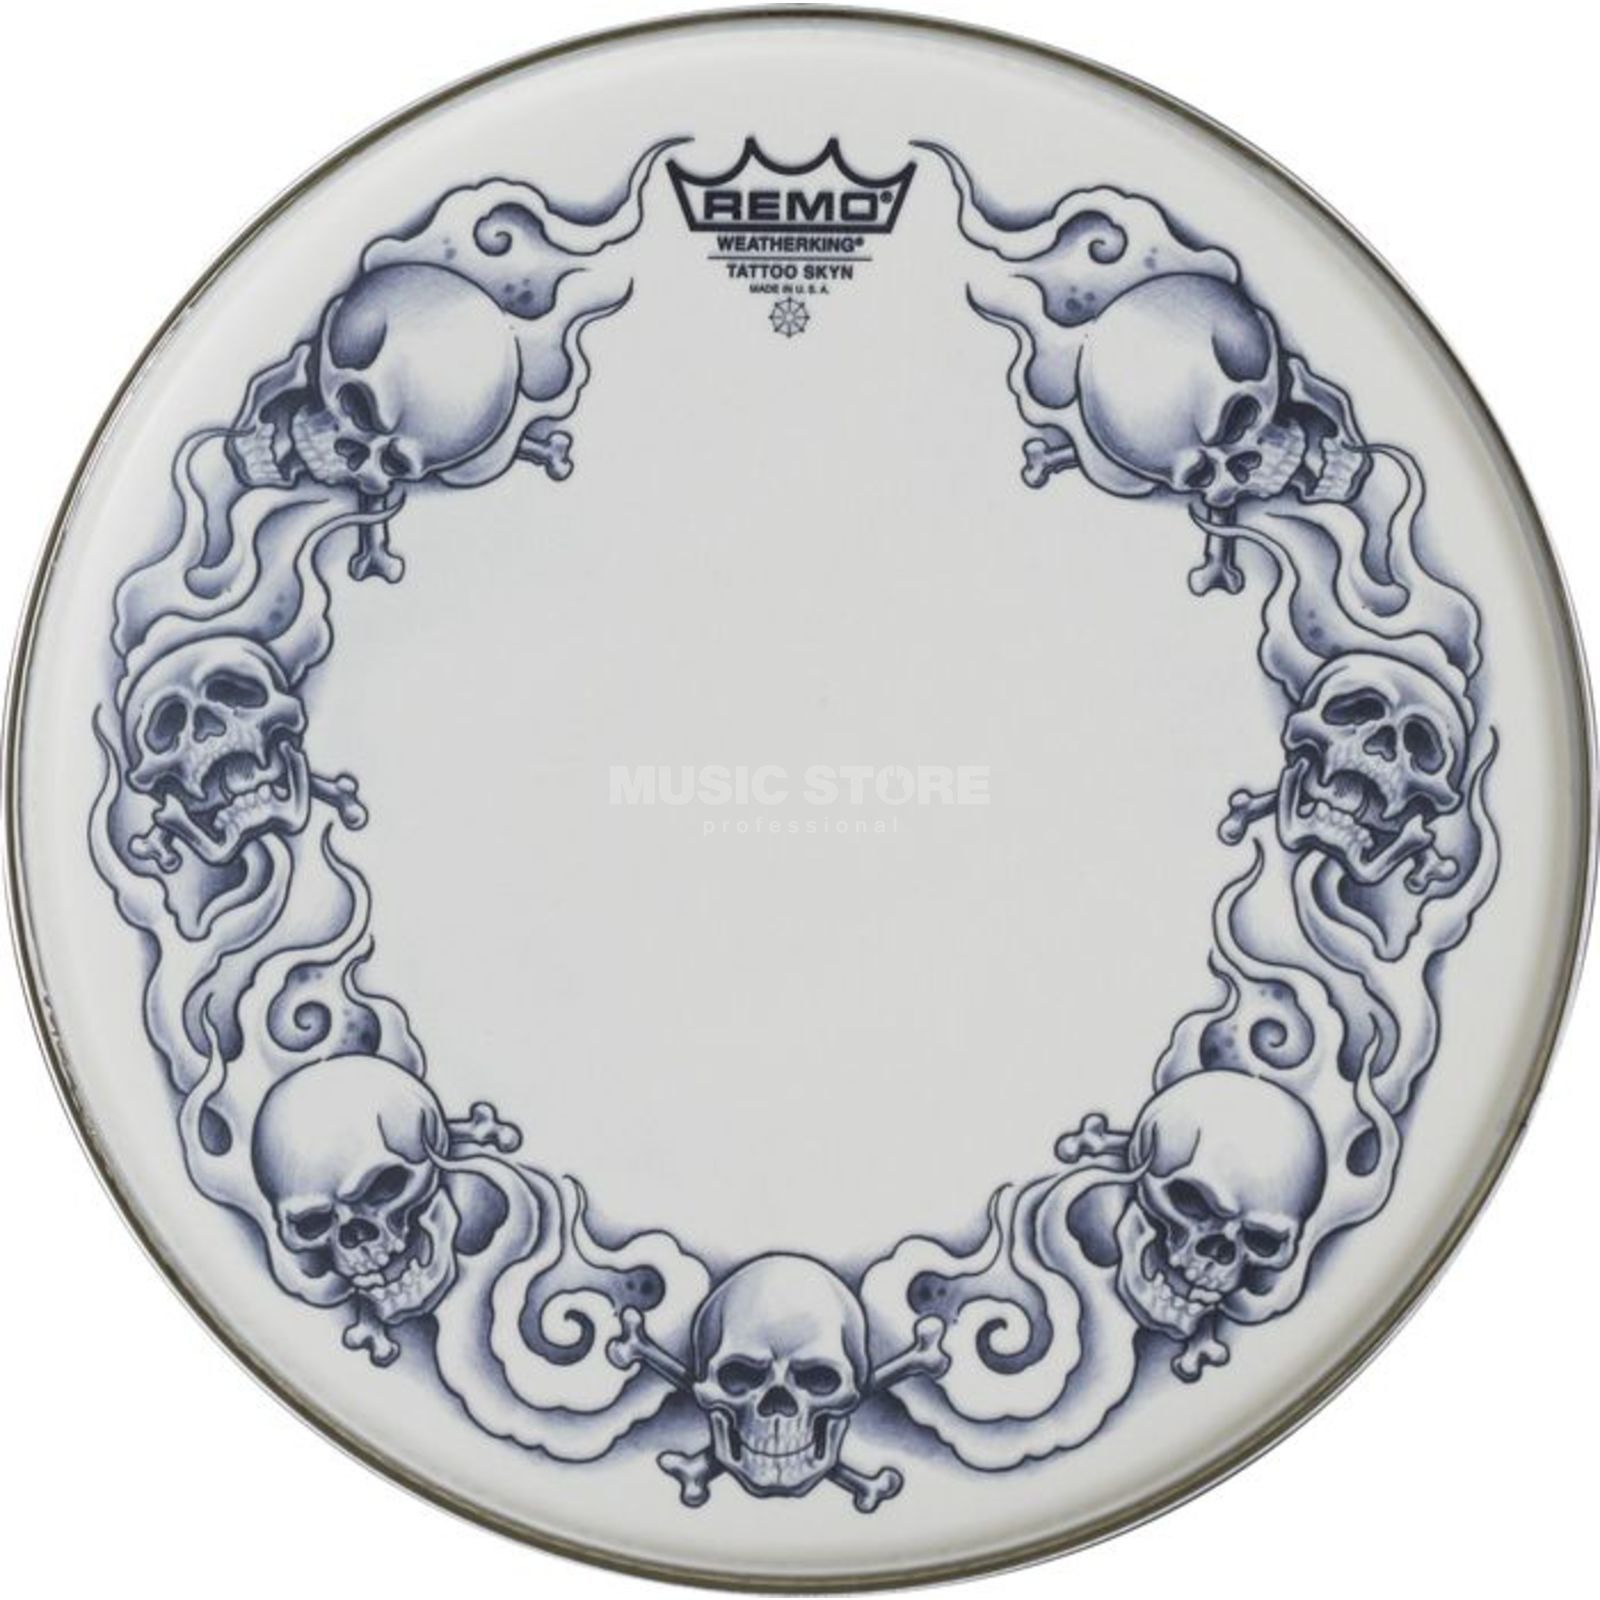 "Remo Tattoo Skyn Suede 14"", Skulls, Snare Batter Product Image"